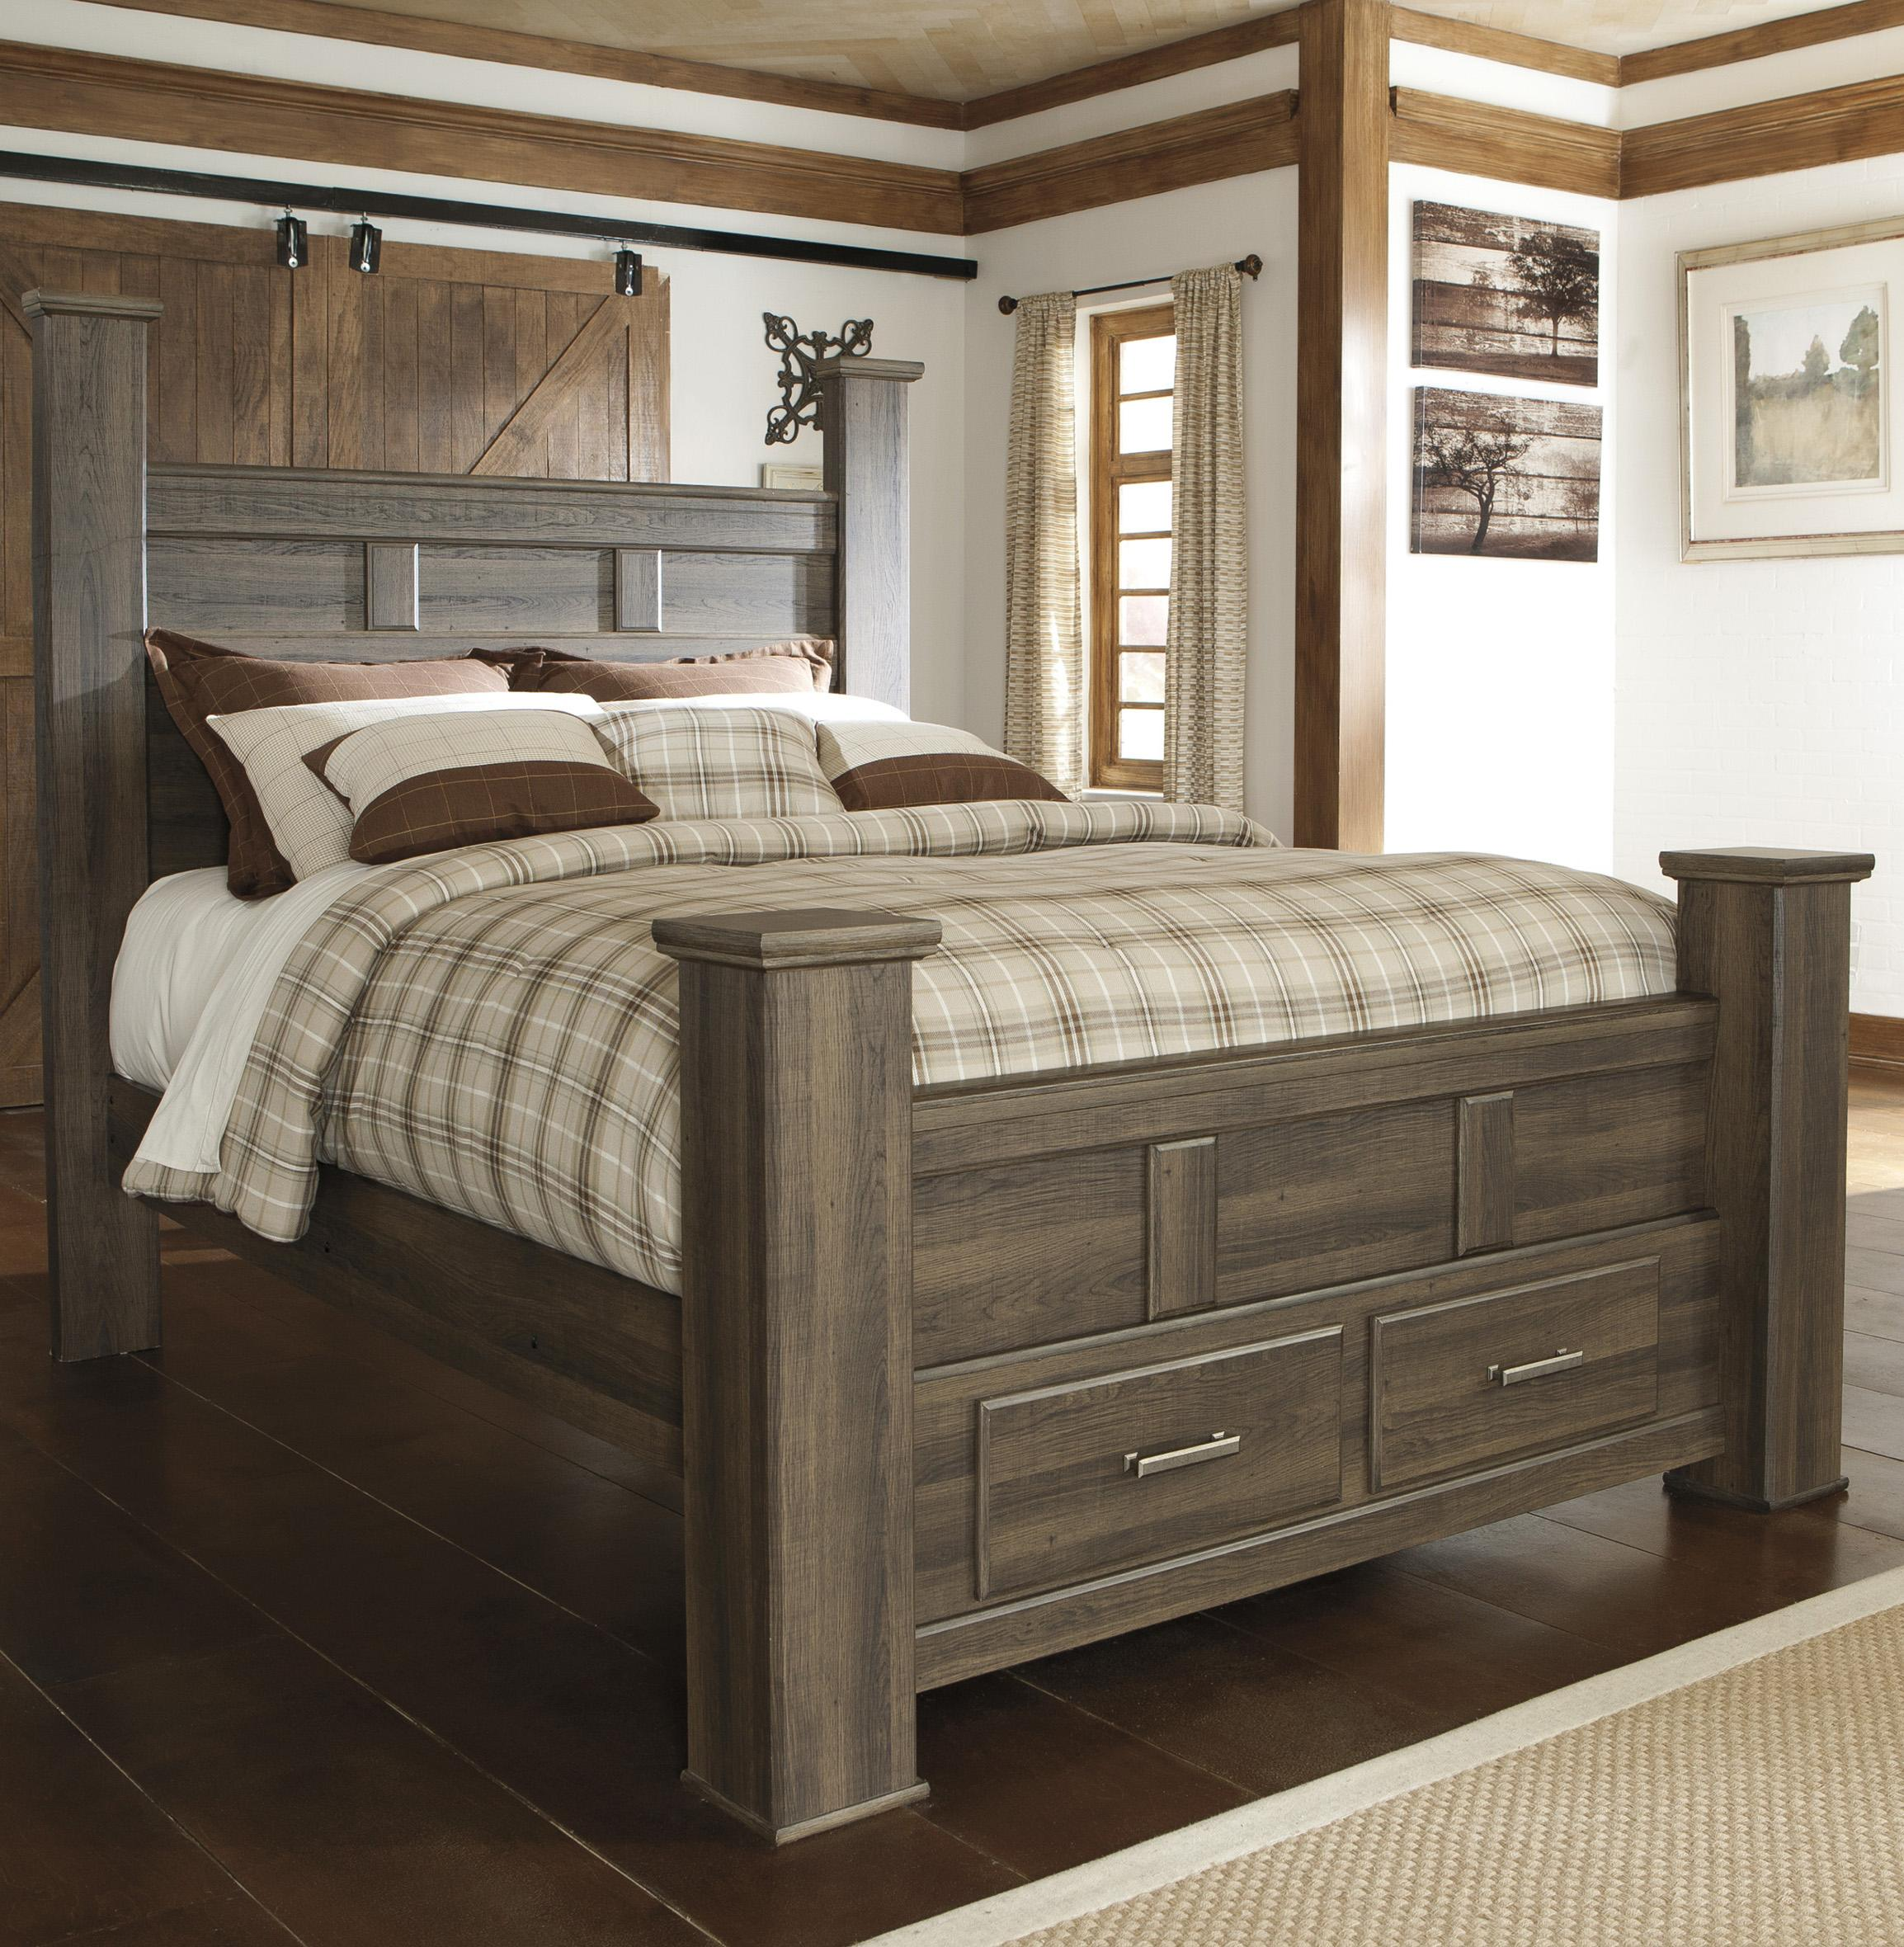 Ashley Furniture Signature Design Juararo Transitional Queen Poster Bed With Footboard Storage Del Sol Furniture Poster Beds